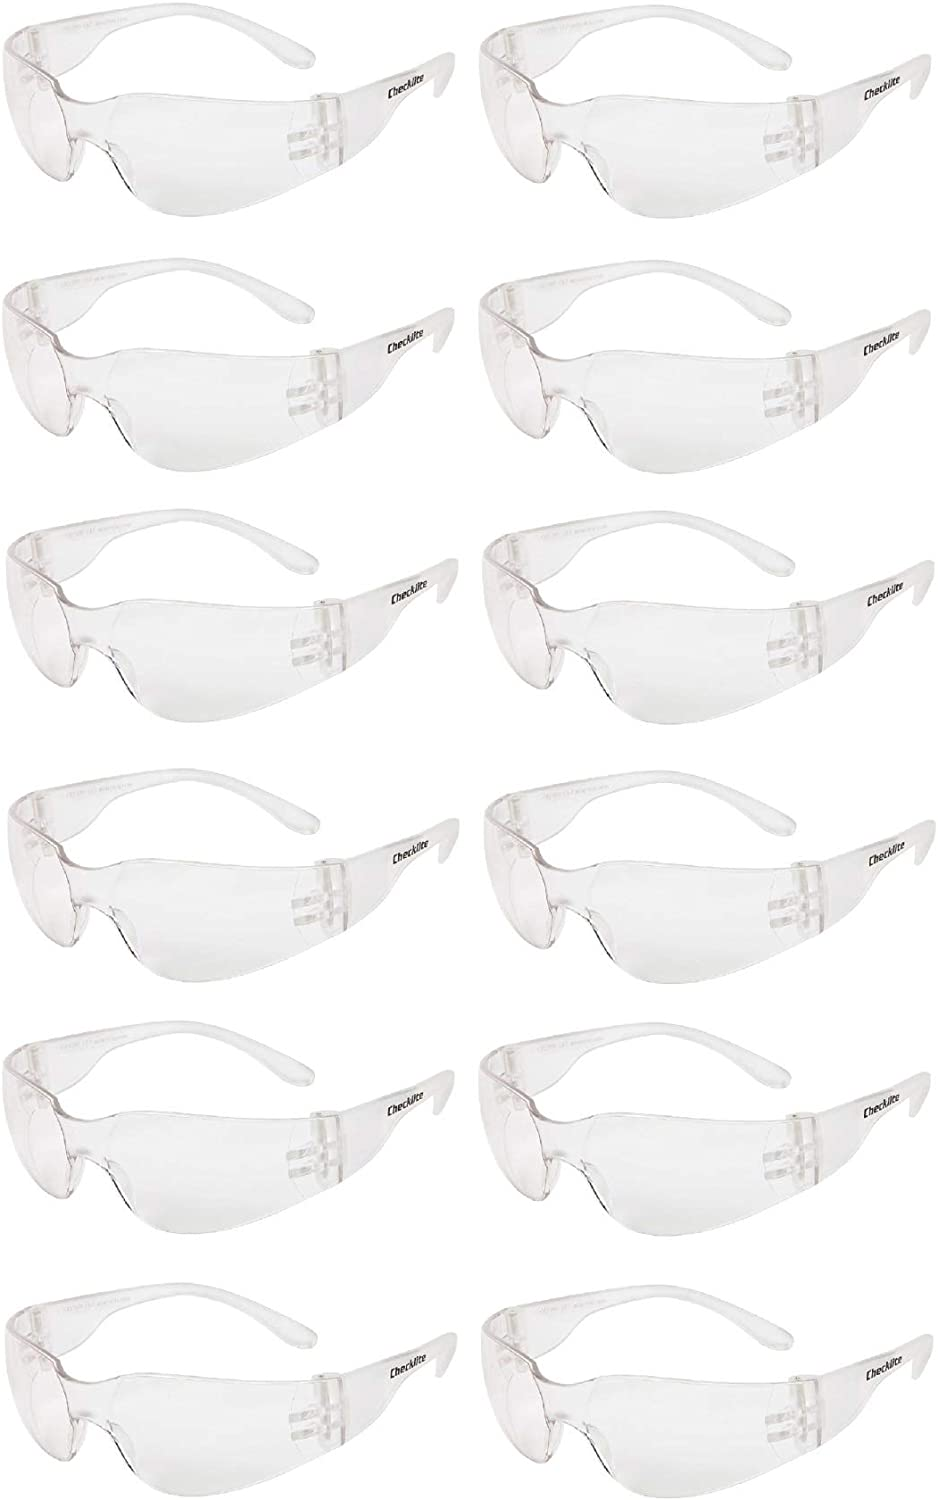 Clear Lens Protective Safety Glasses ANSI Z87+ Compliant Pack of 12 Polycarbonate Impact Resistant Lens